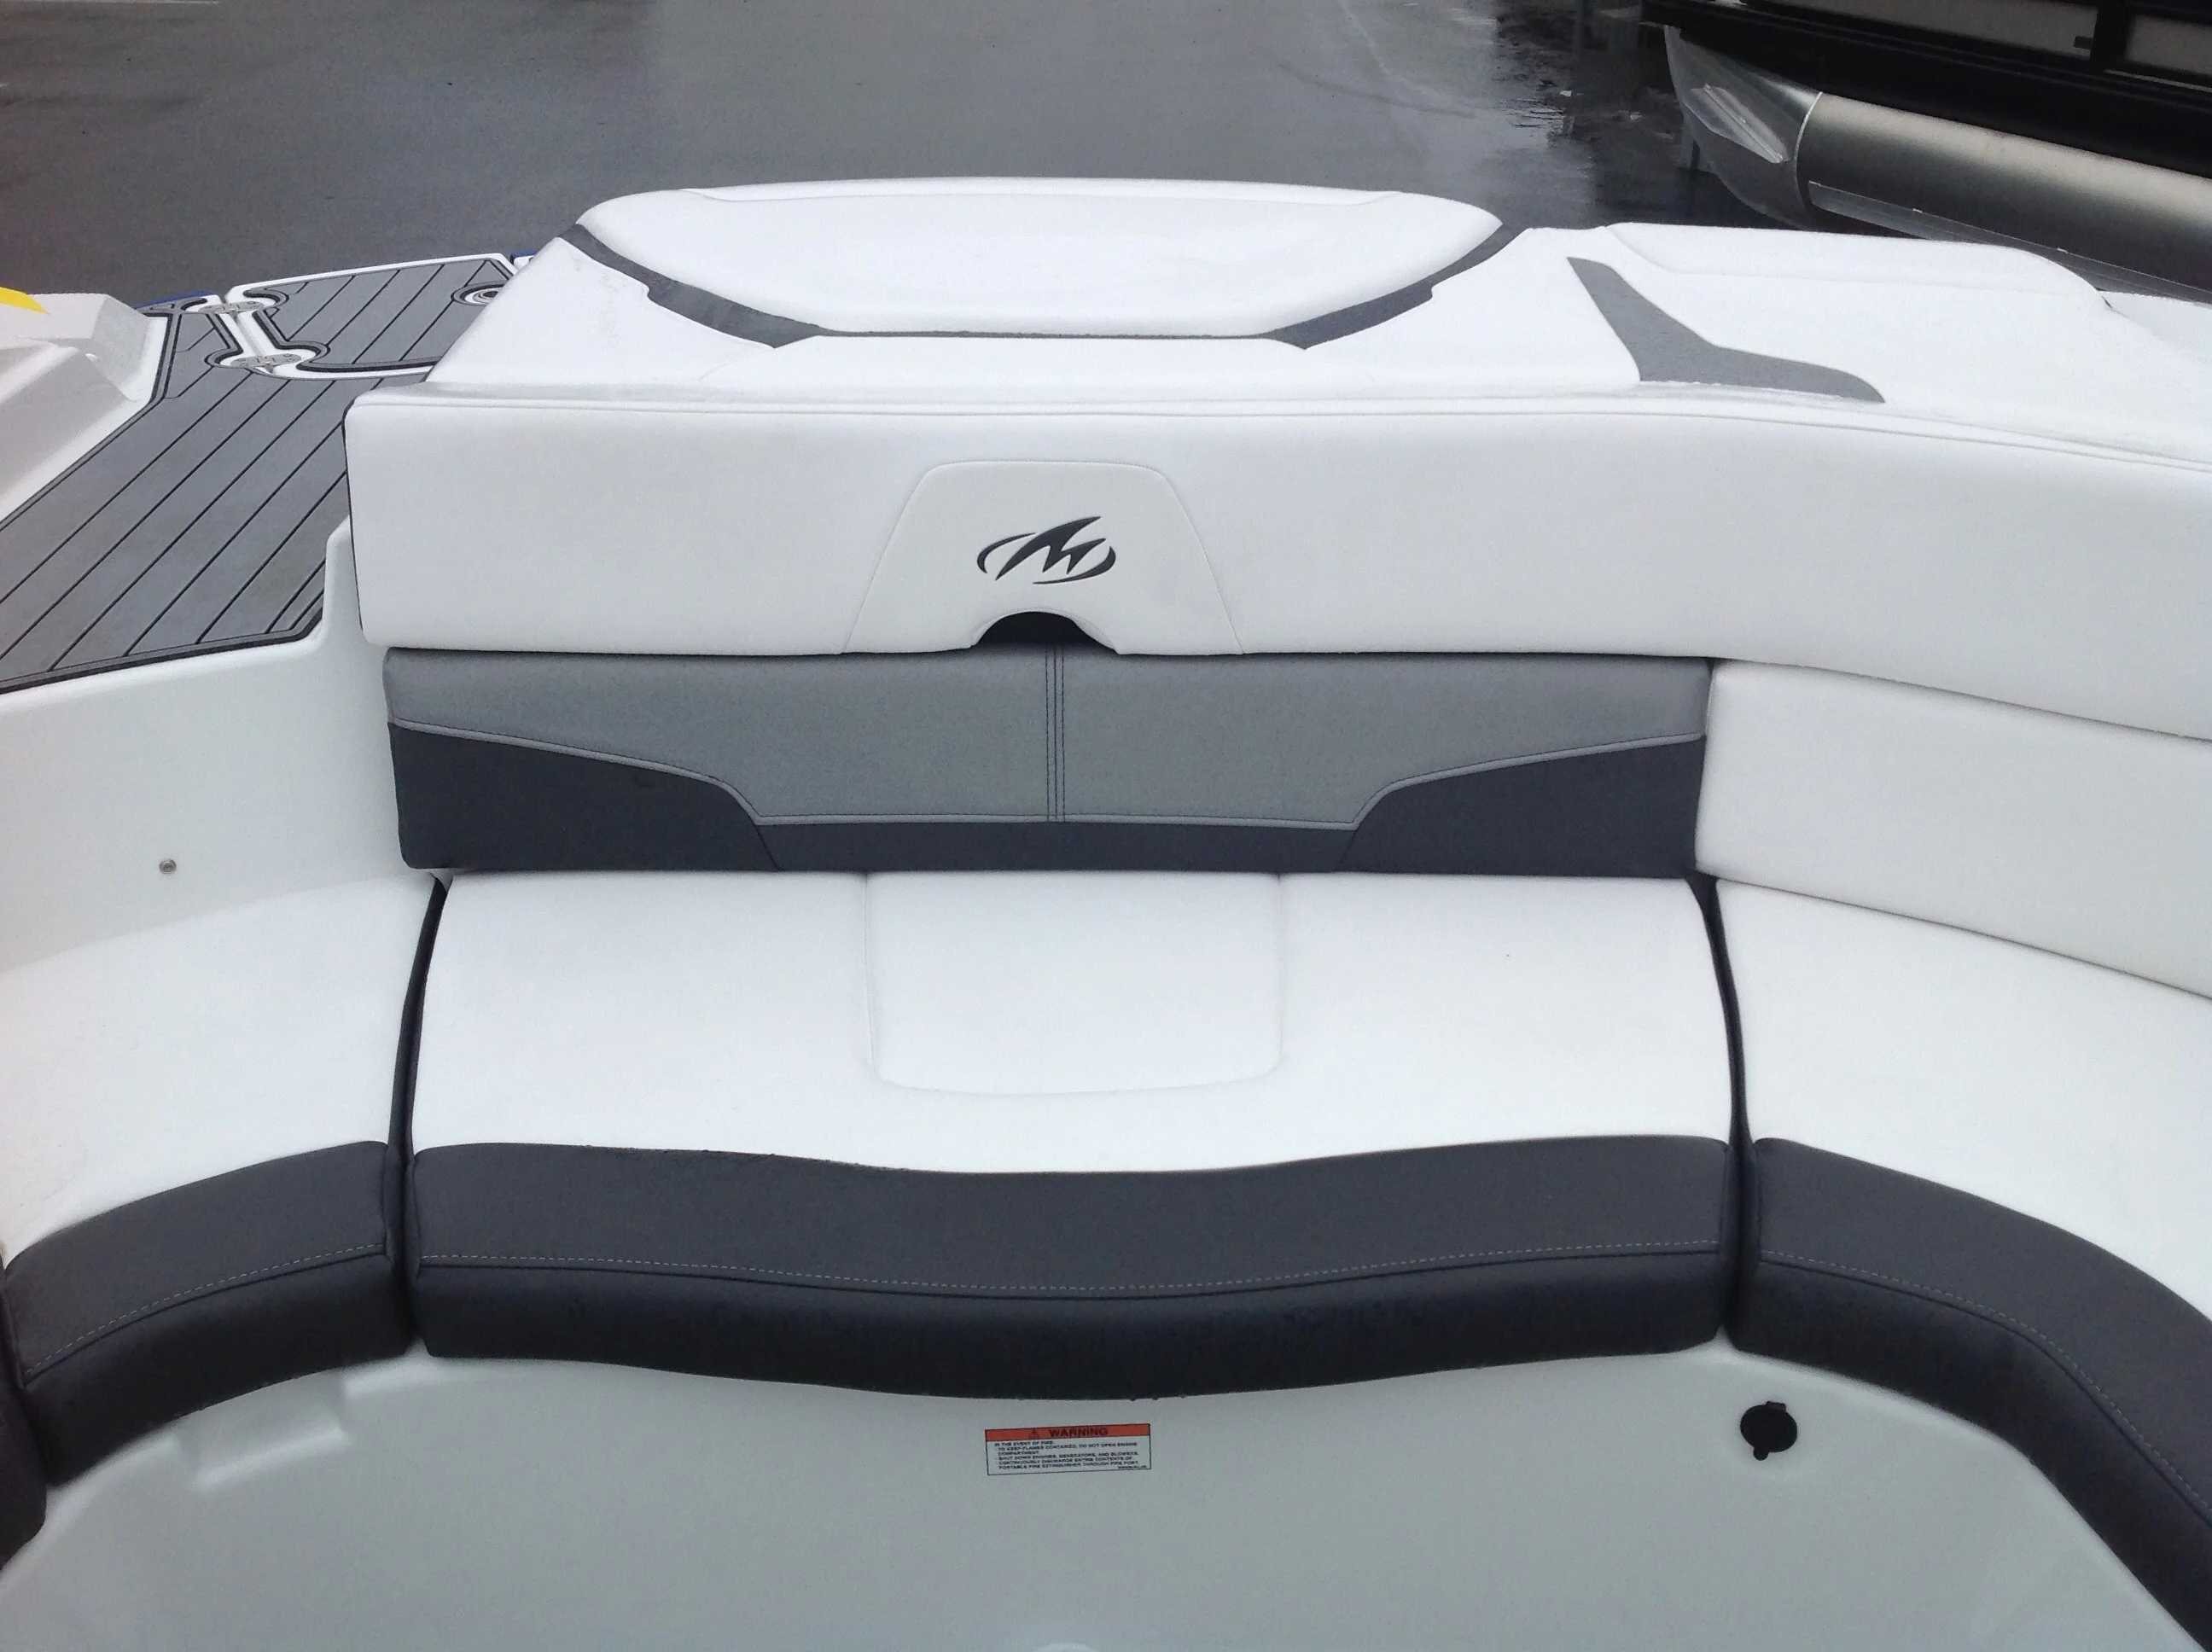 2022 Monterey boat for sale, model of the boat is 224FS & Image # 7 of 10